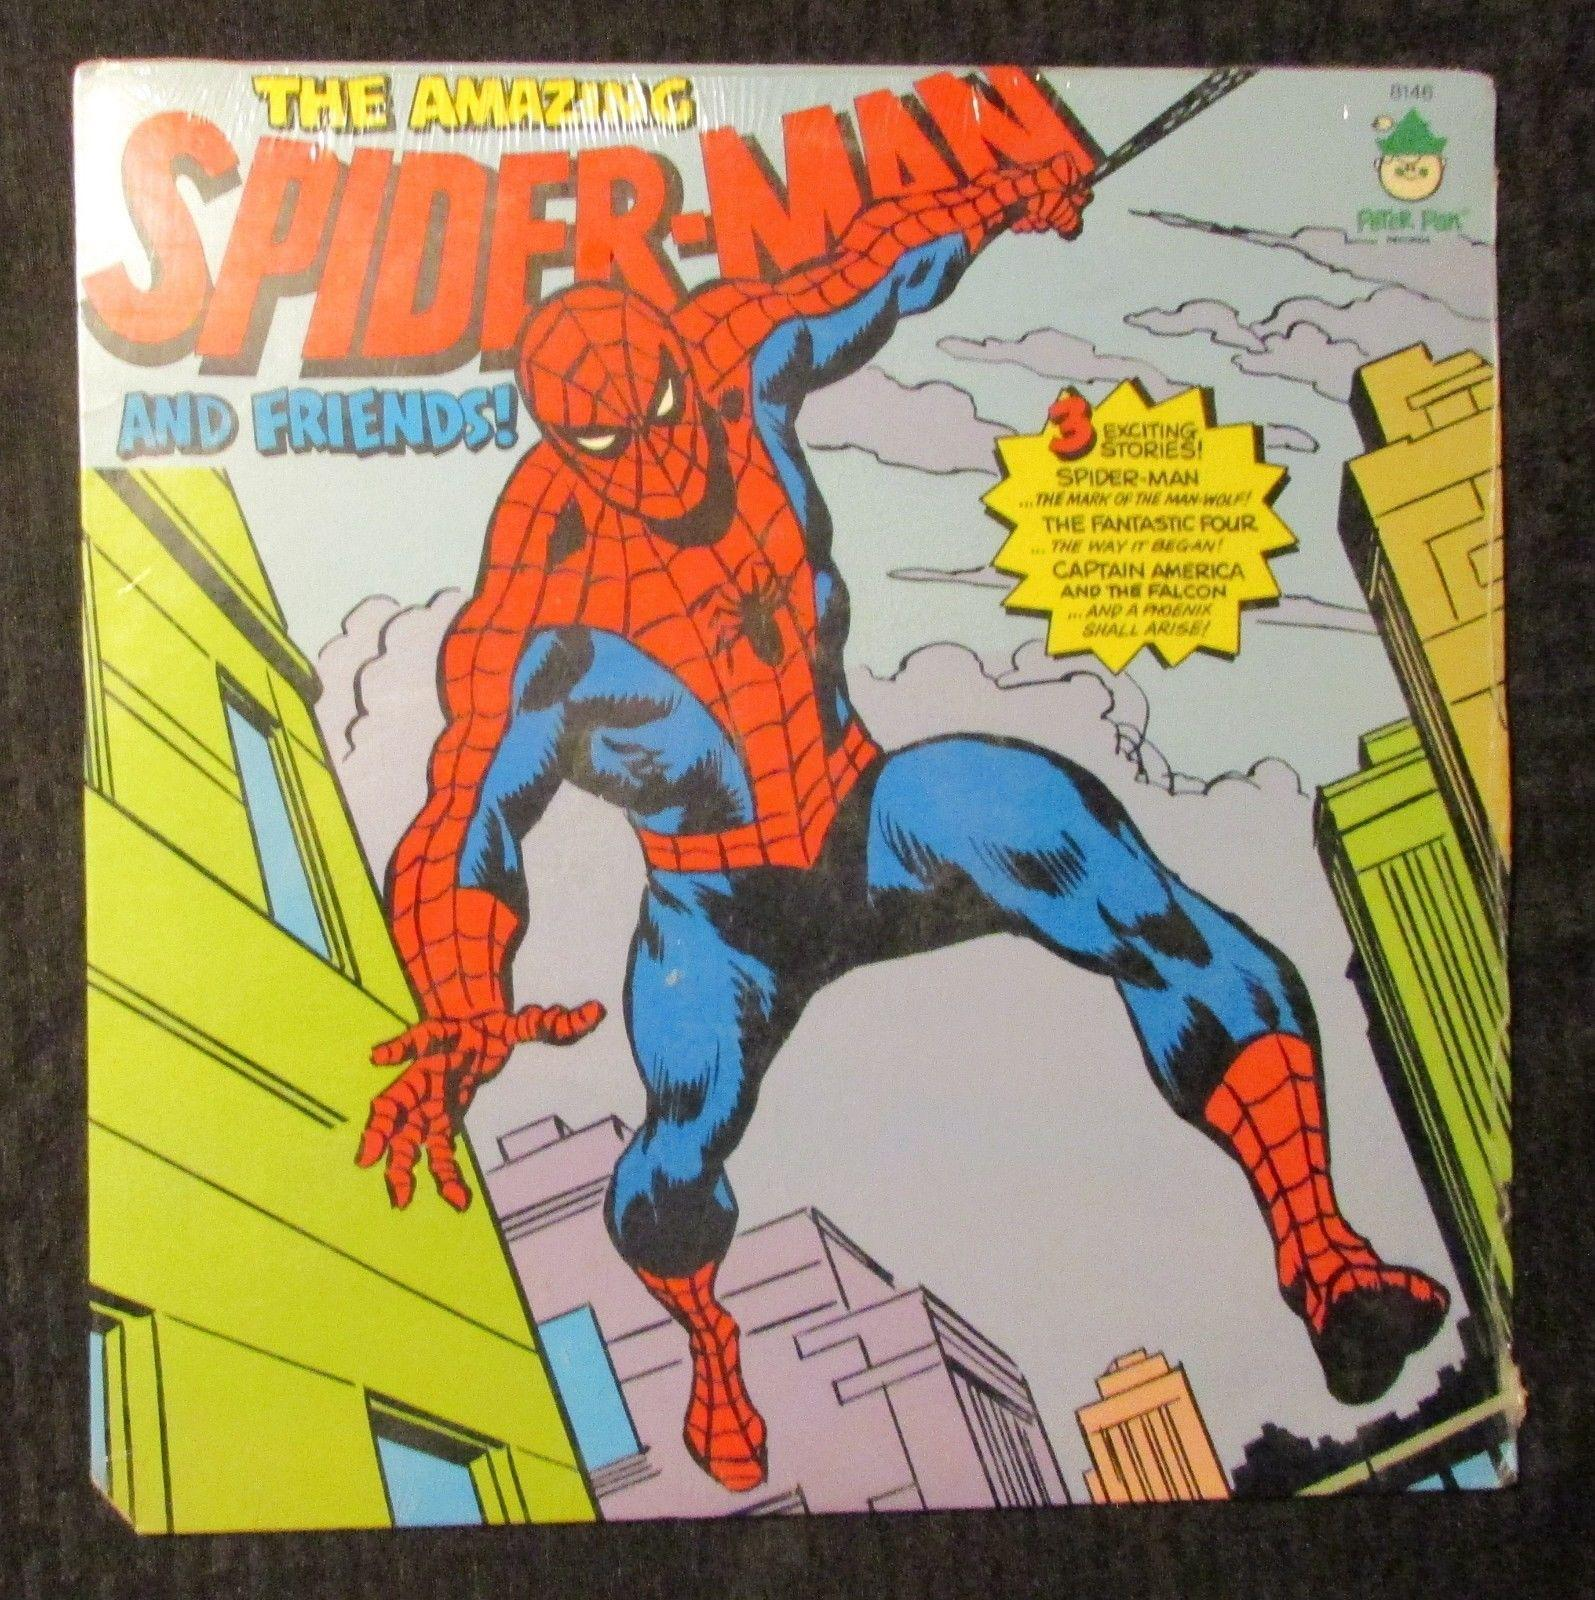 1974 The Amazing Spiderman And Friends LP Sealed Power Records 8146